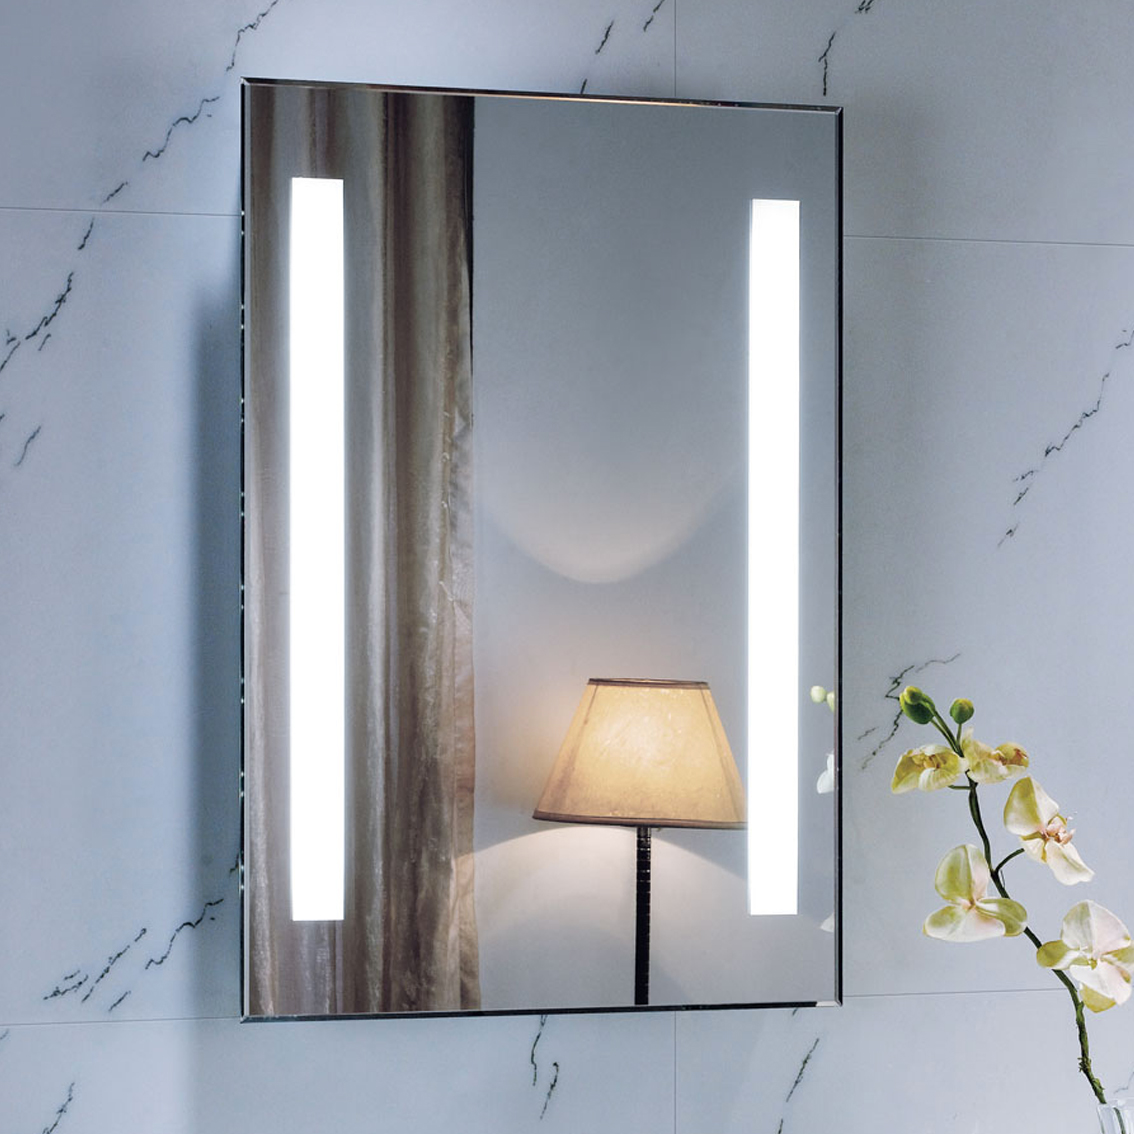 700 x 500 Wall Hung Vanity Backlit Slimline Illuminated